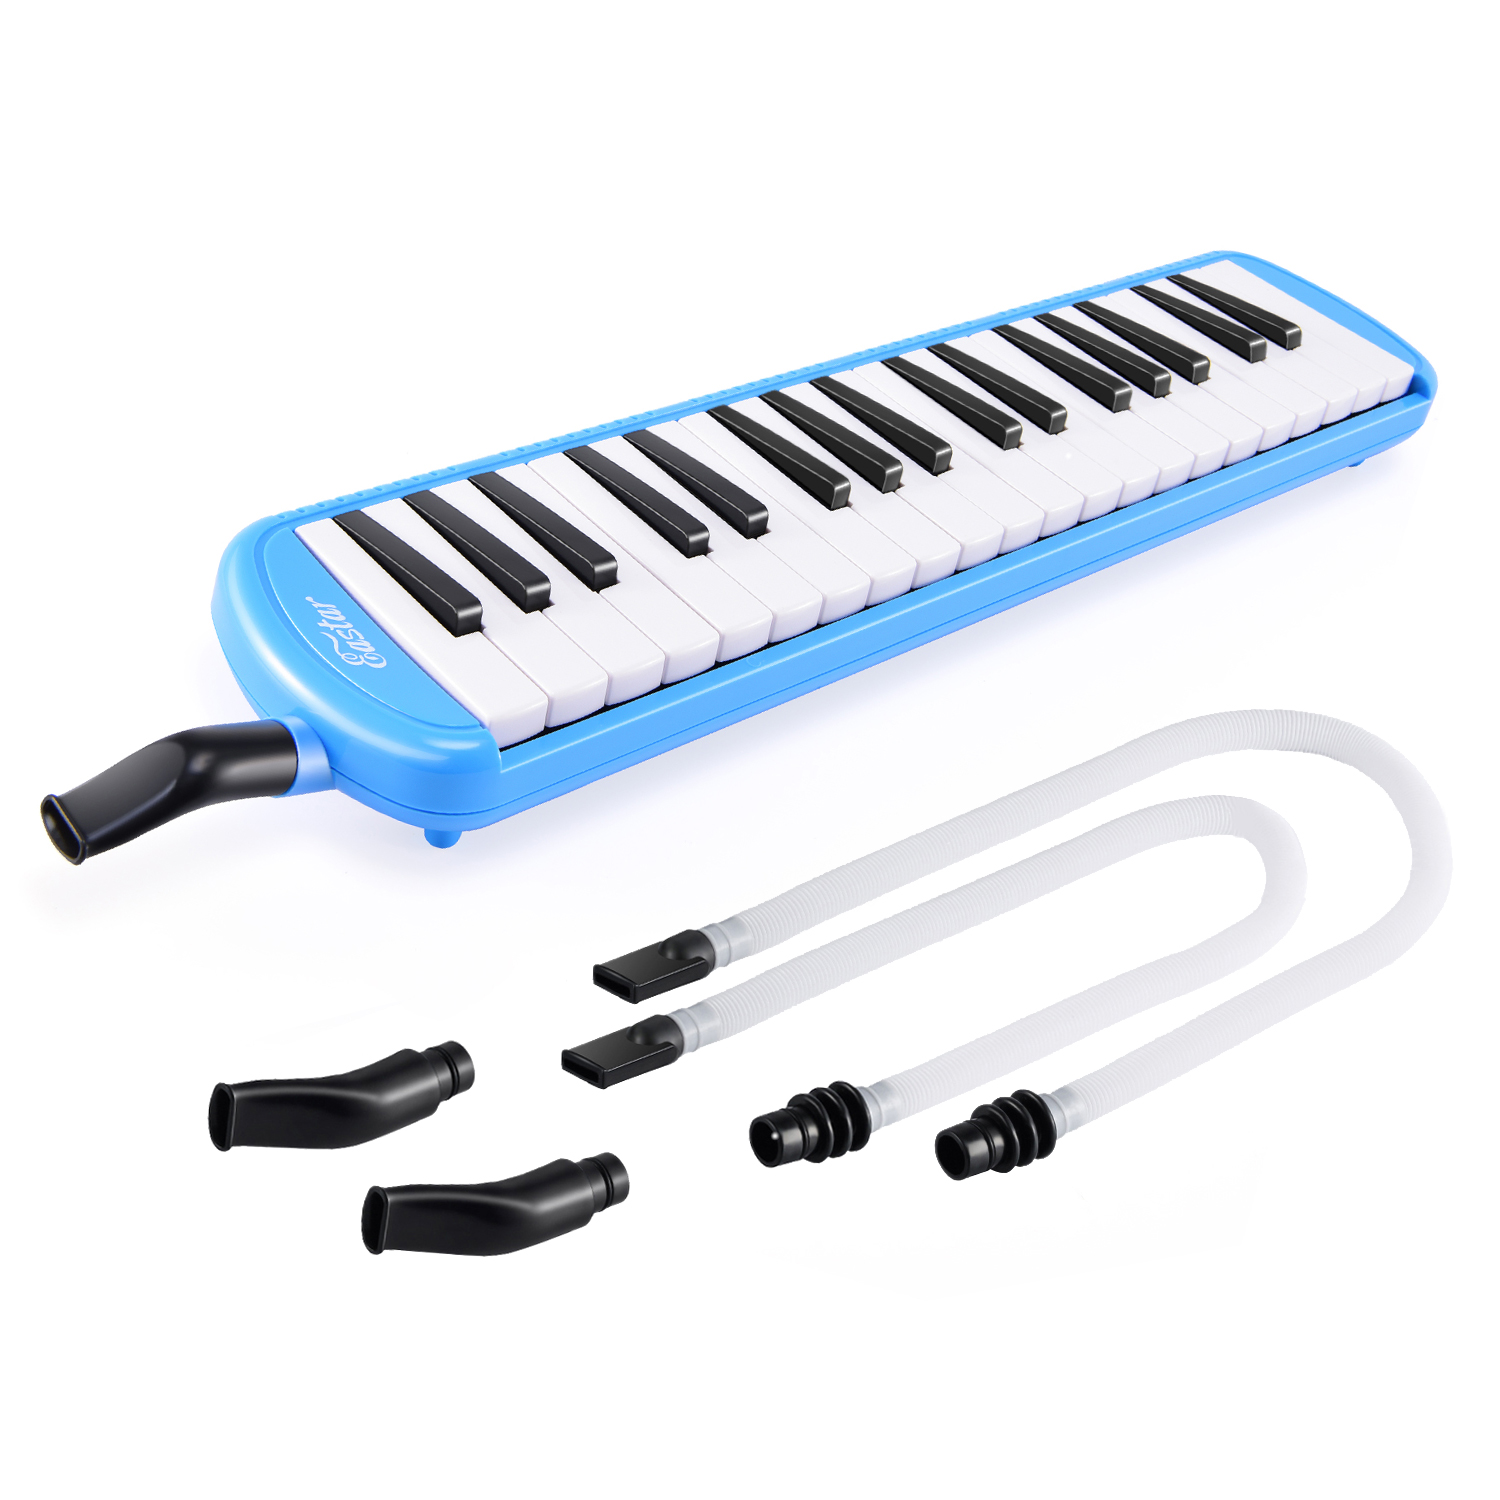 37 Keys Piano Melodica Keyboard Melodic Accordions Kit Music Instrument Melodion For Education Students Kids Beginners With Bag